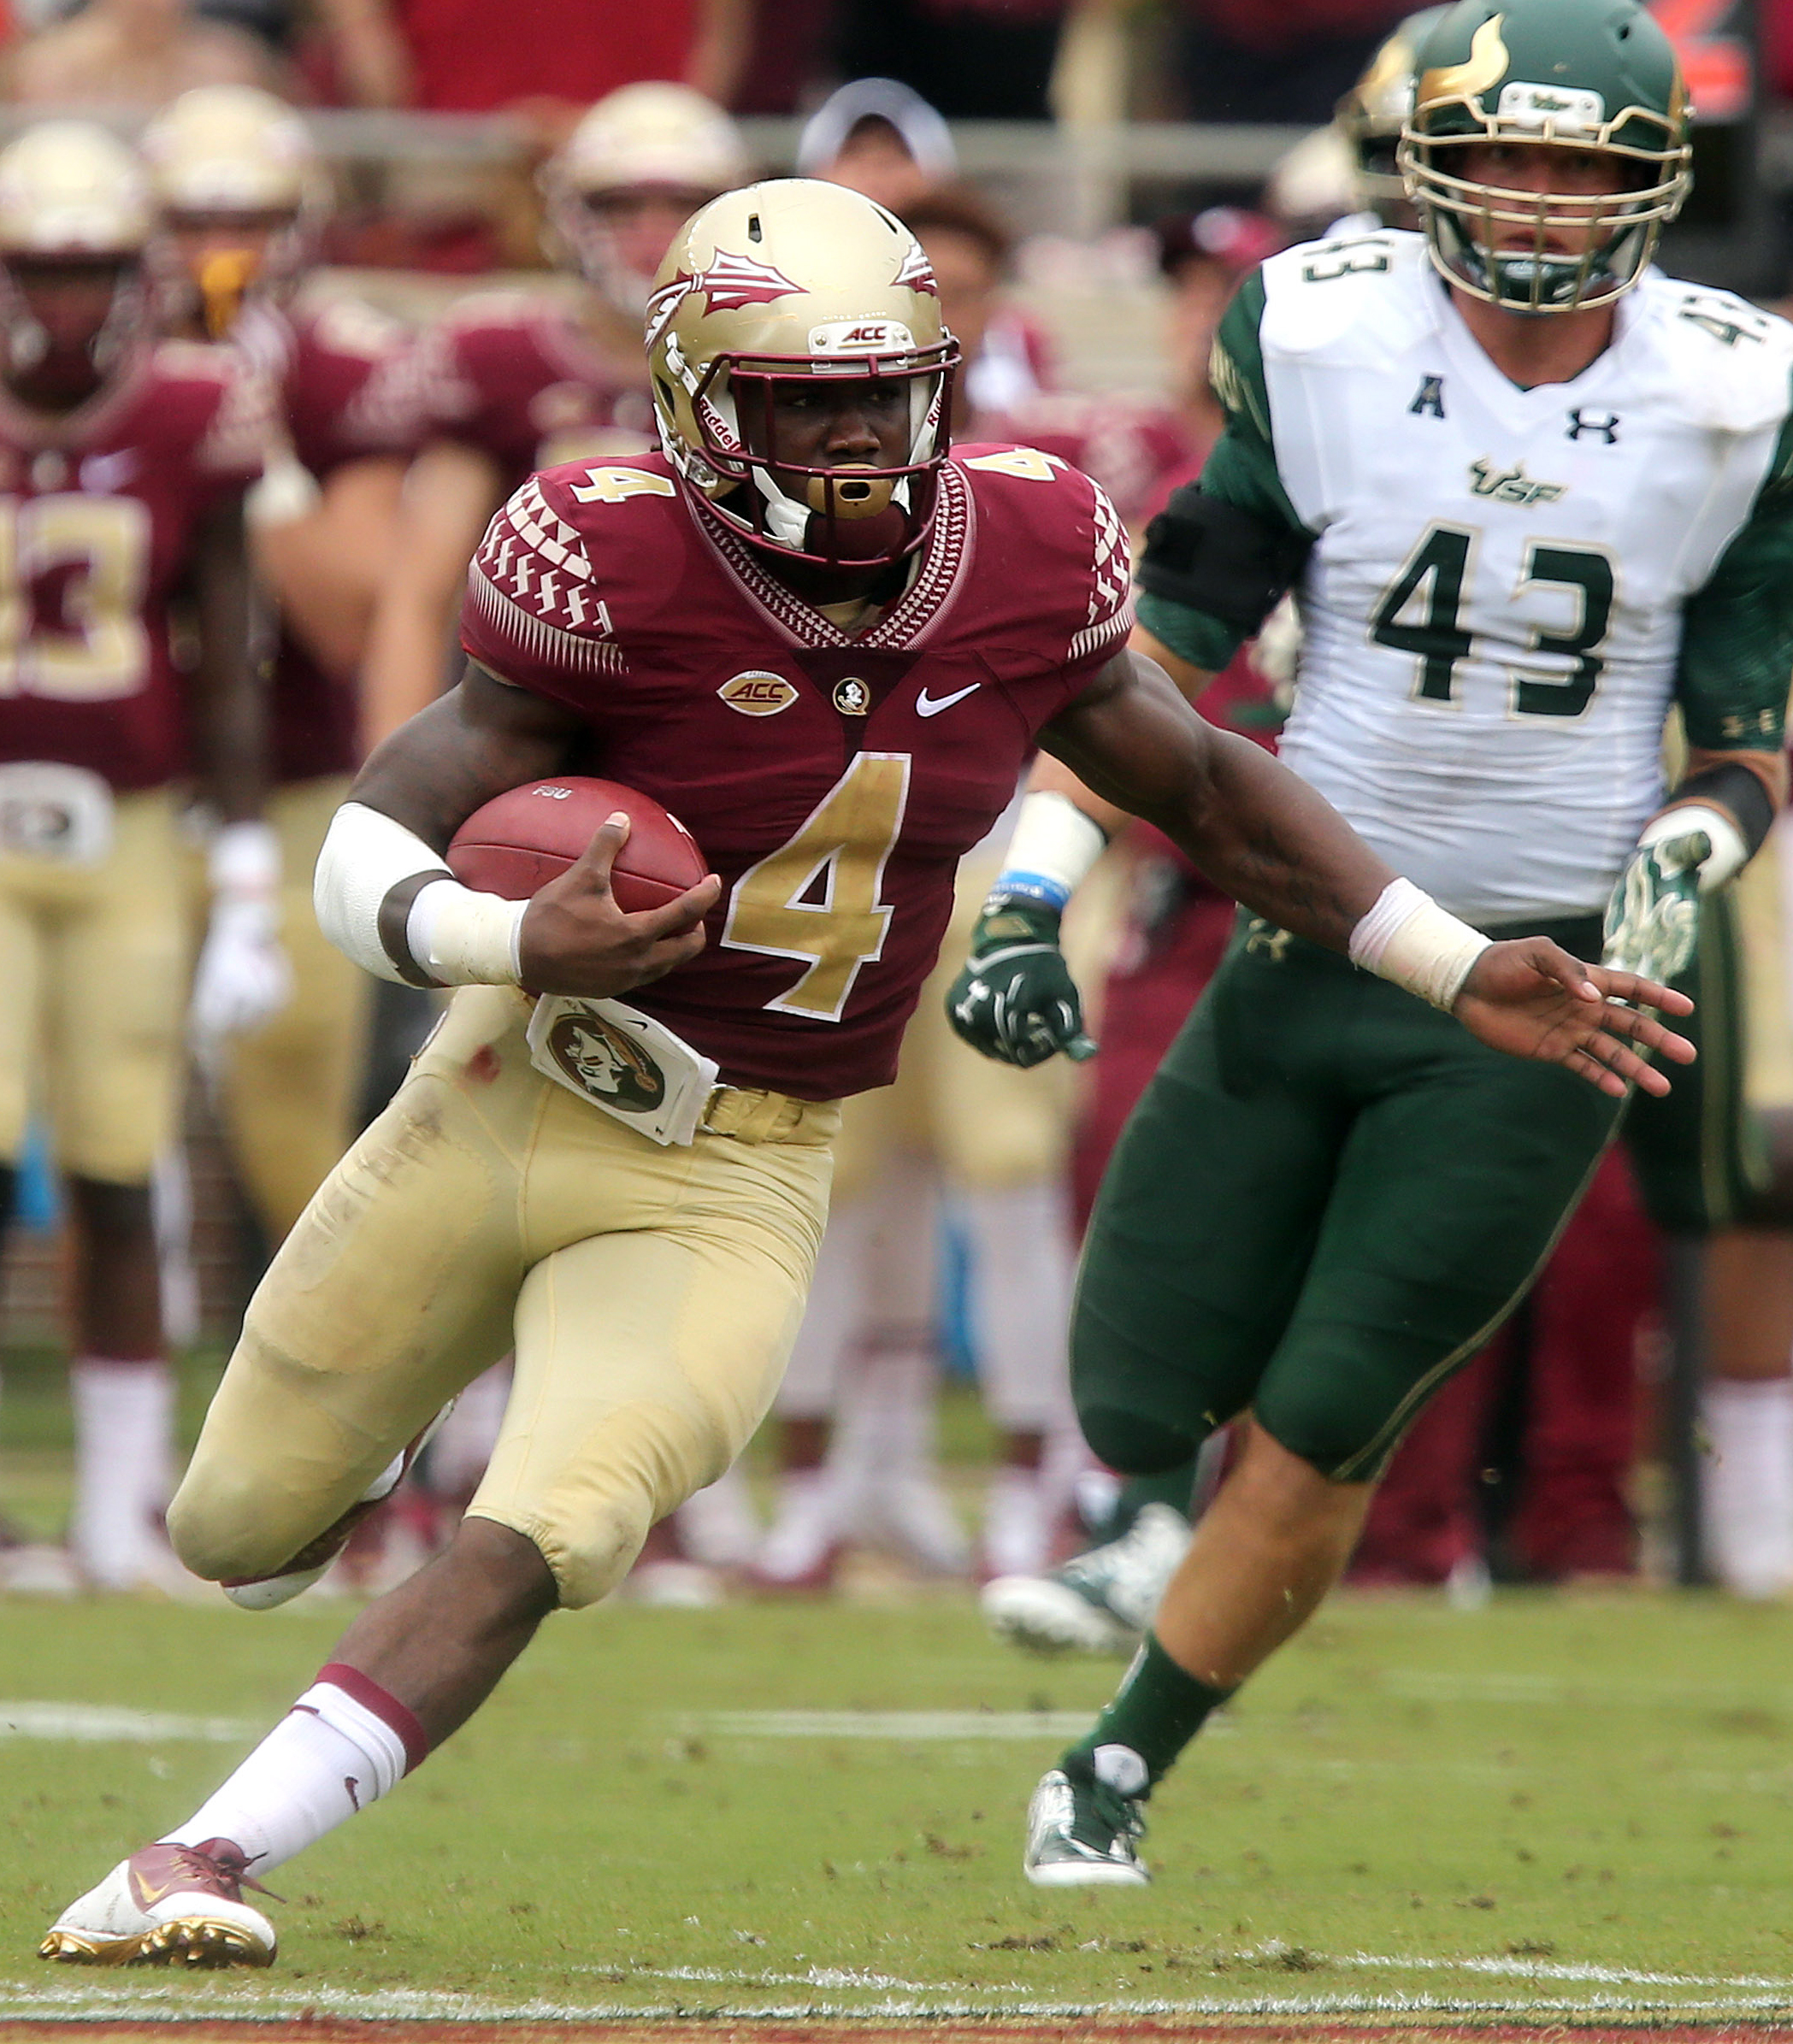 FILE - In this Saturday, Sept. 12, 2015, file photo, Florida State's Dalvin Cook,  left, scampers 74 yards for a touchdown against South Florida during the first quarter of an NCAA college football game in Tallahassee, Fla.  After an offseason where many